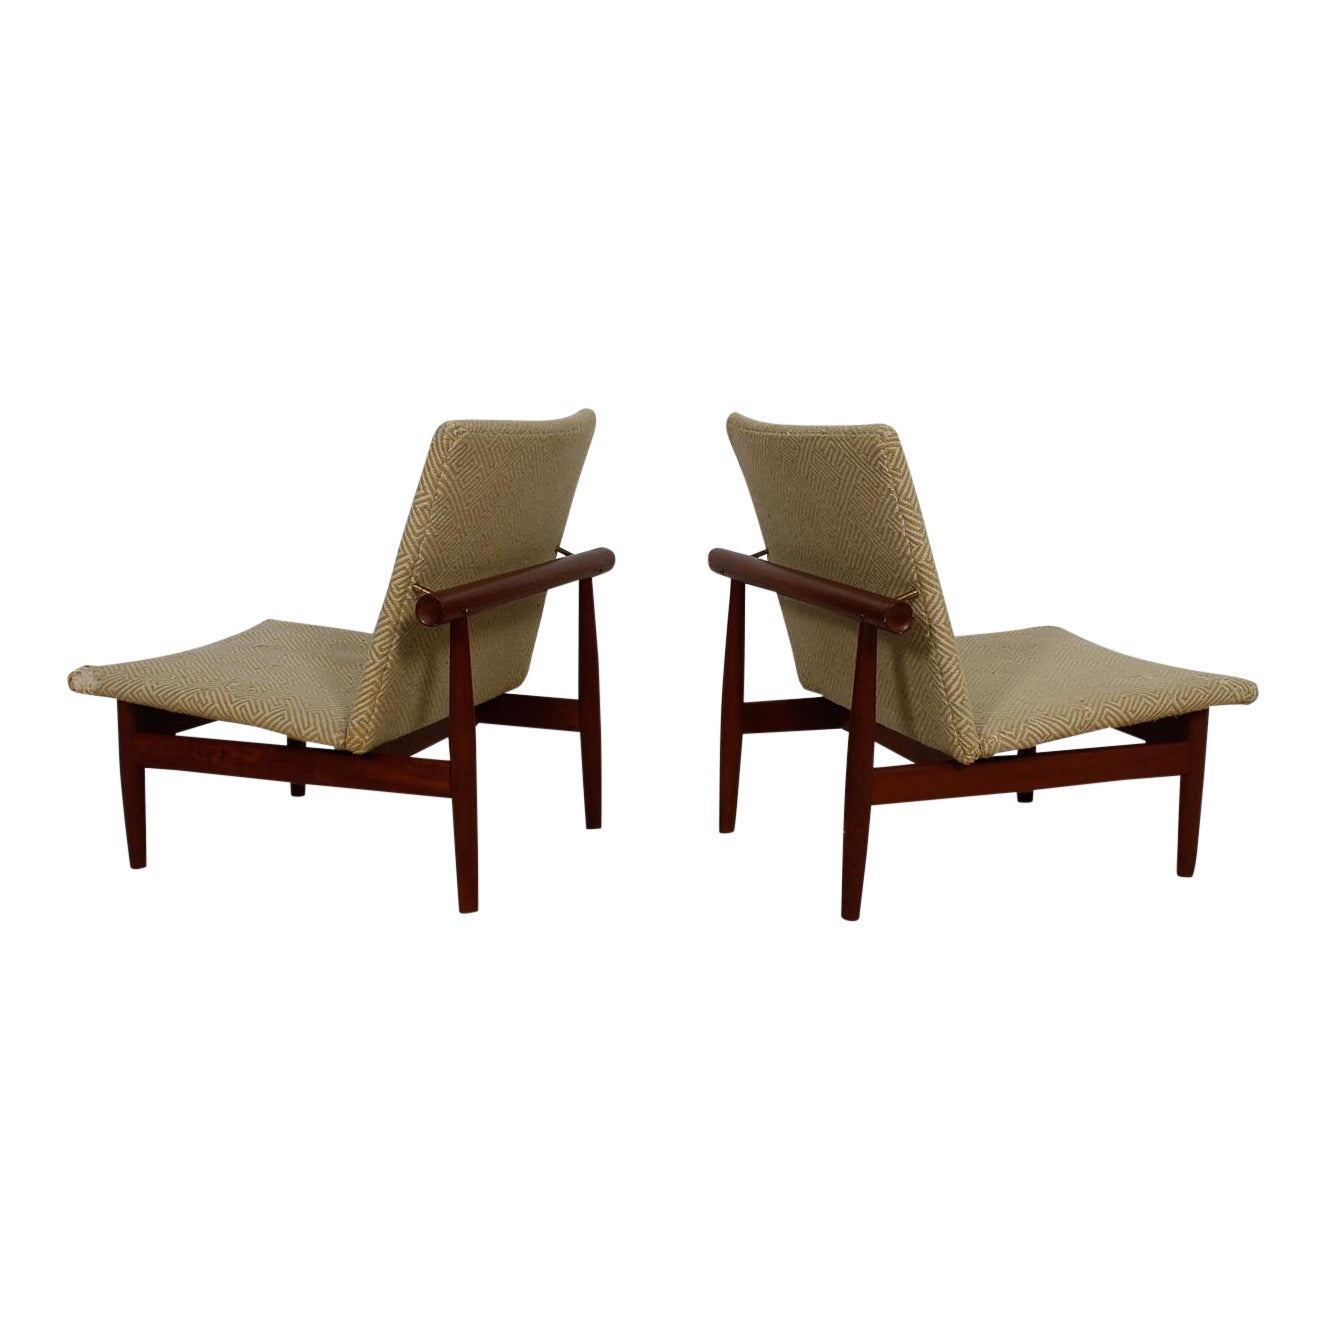 Finn Juhl Pair of Teak 'Japan' Chairs